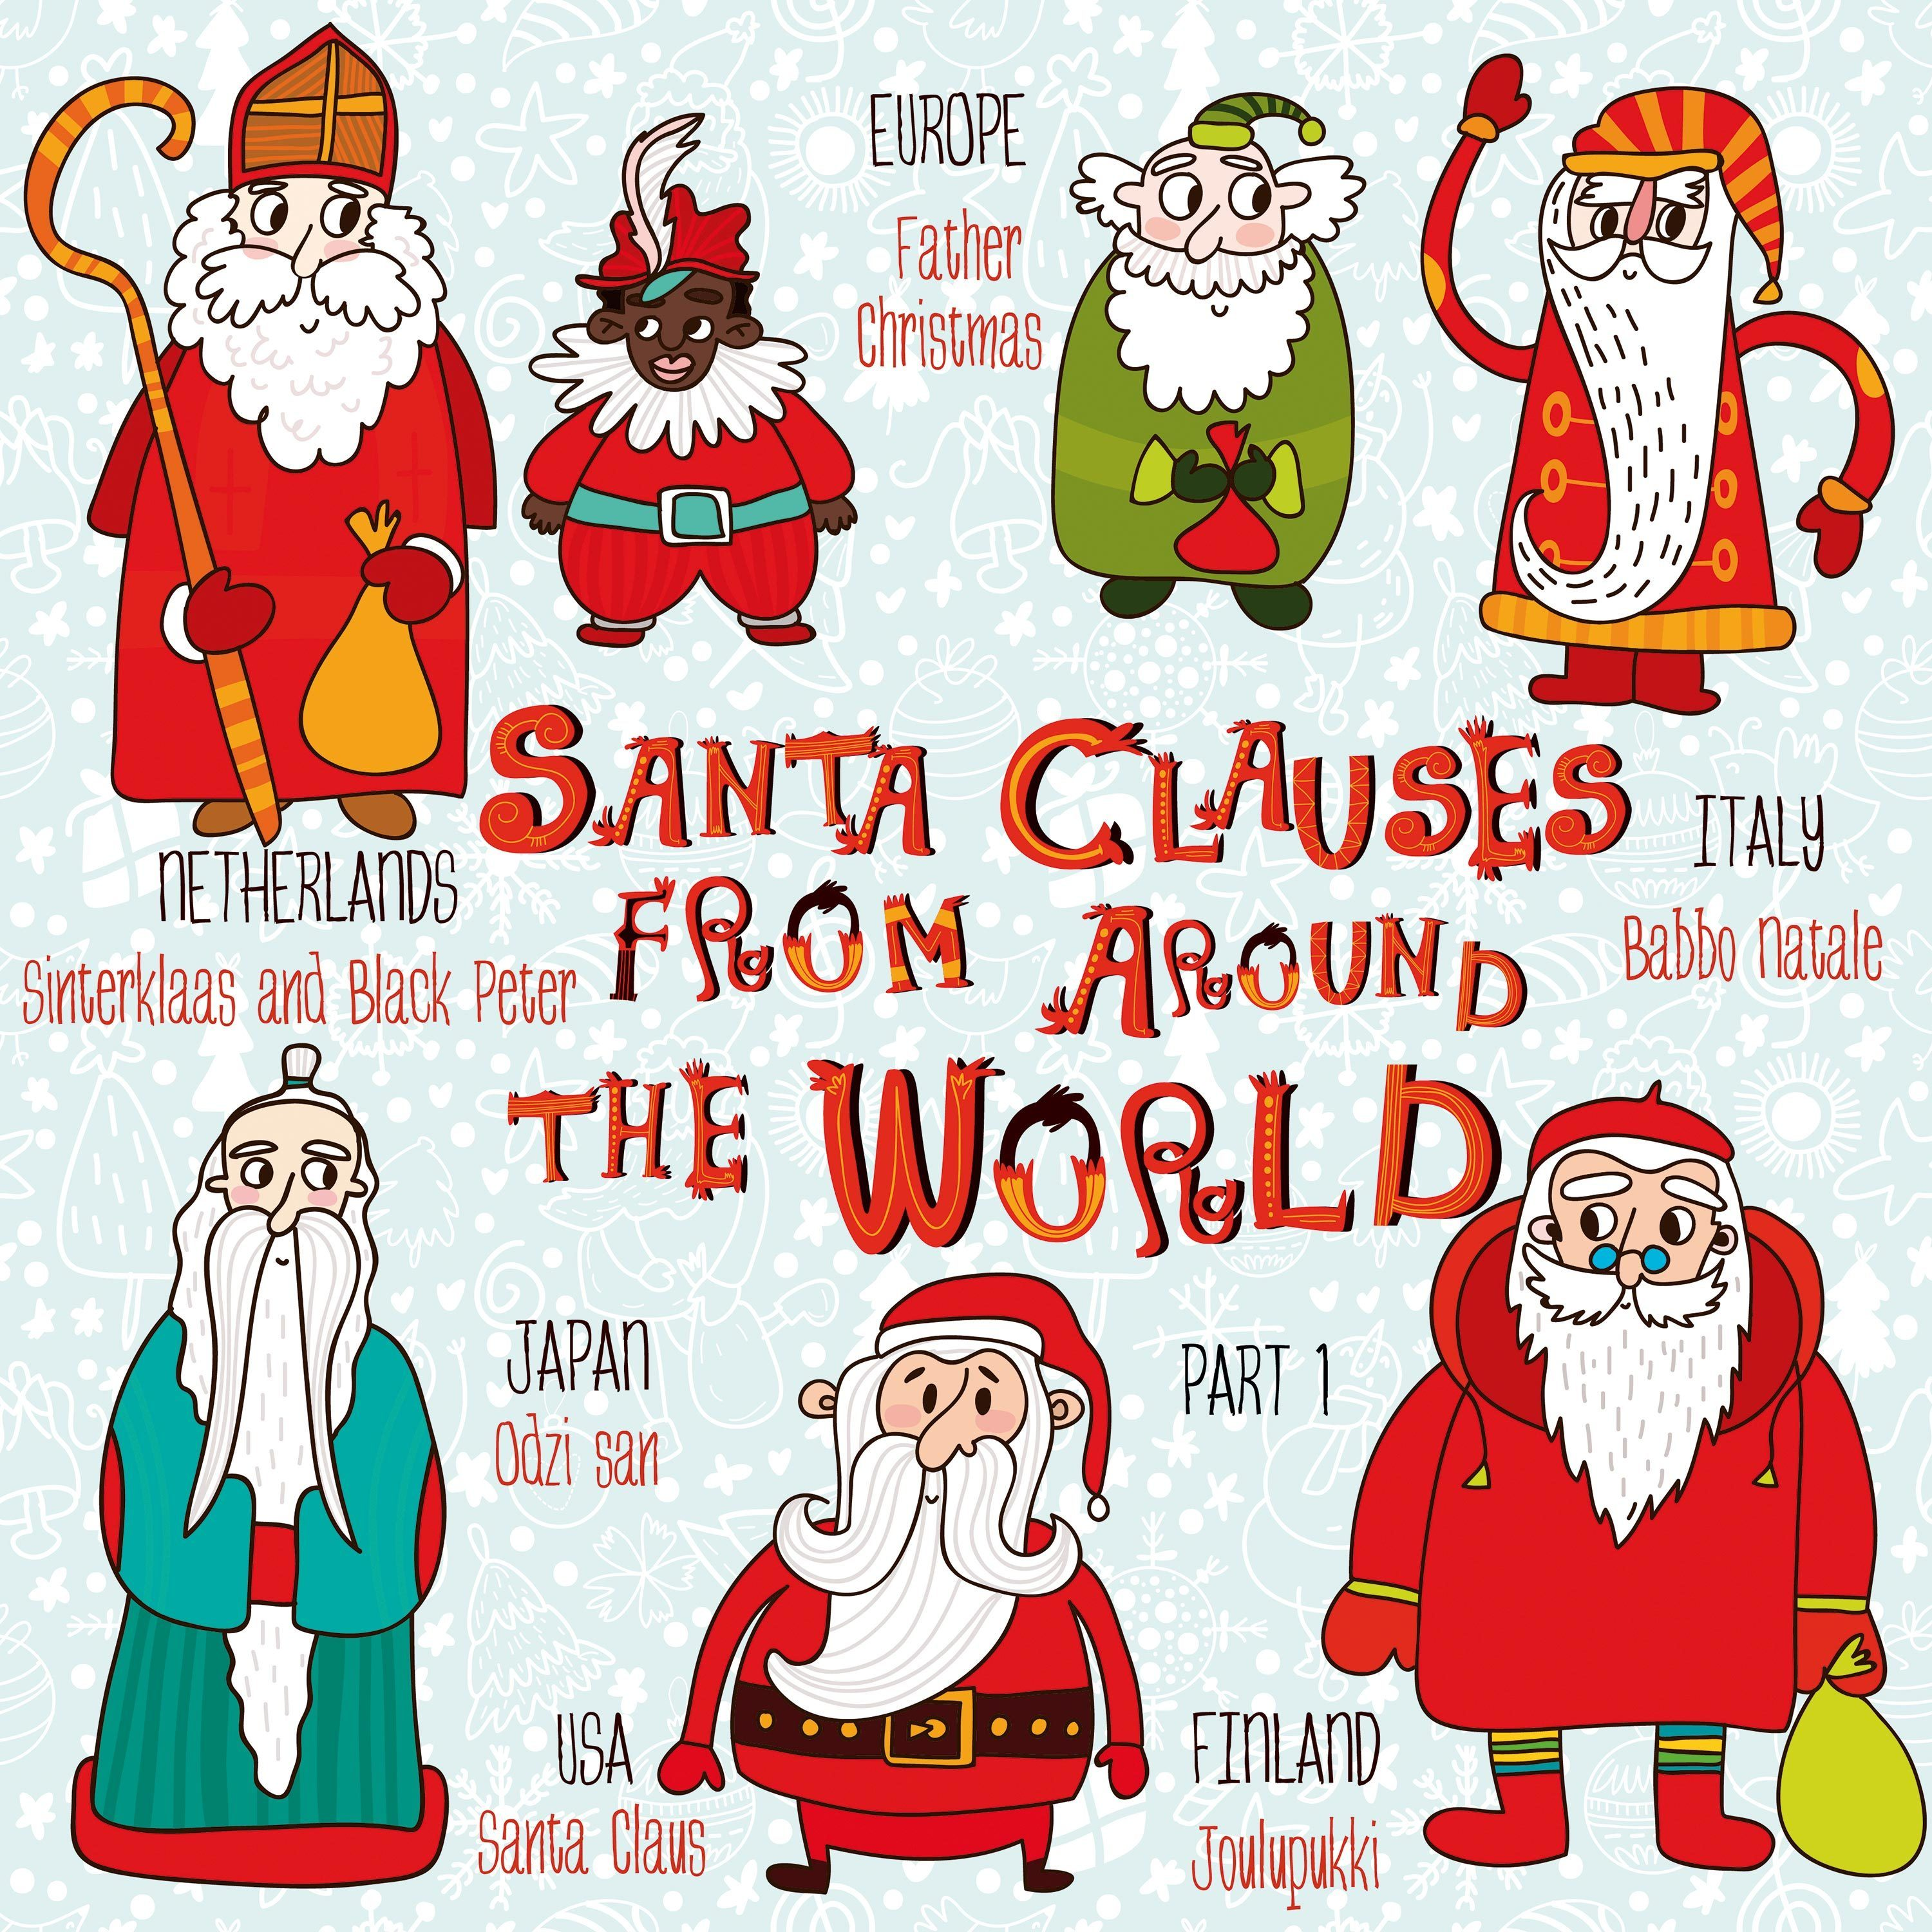 Santa Clauses from around the world